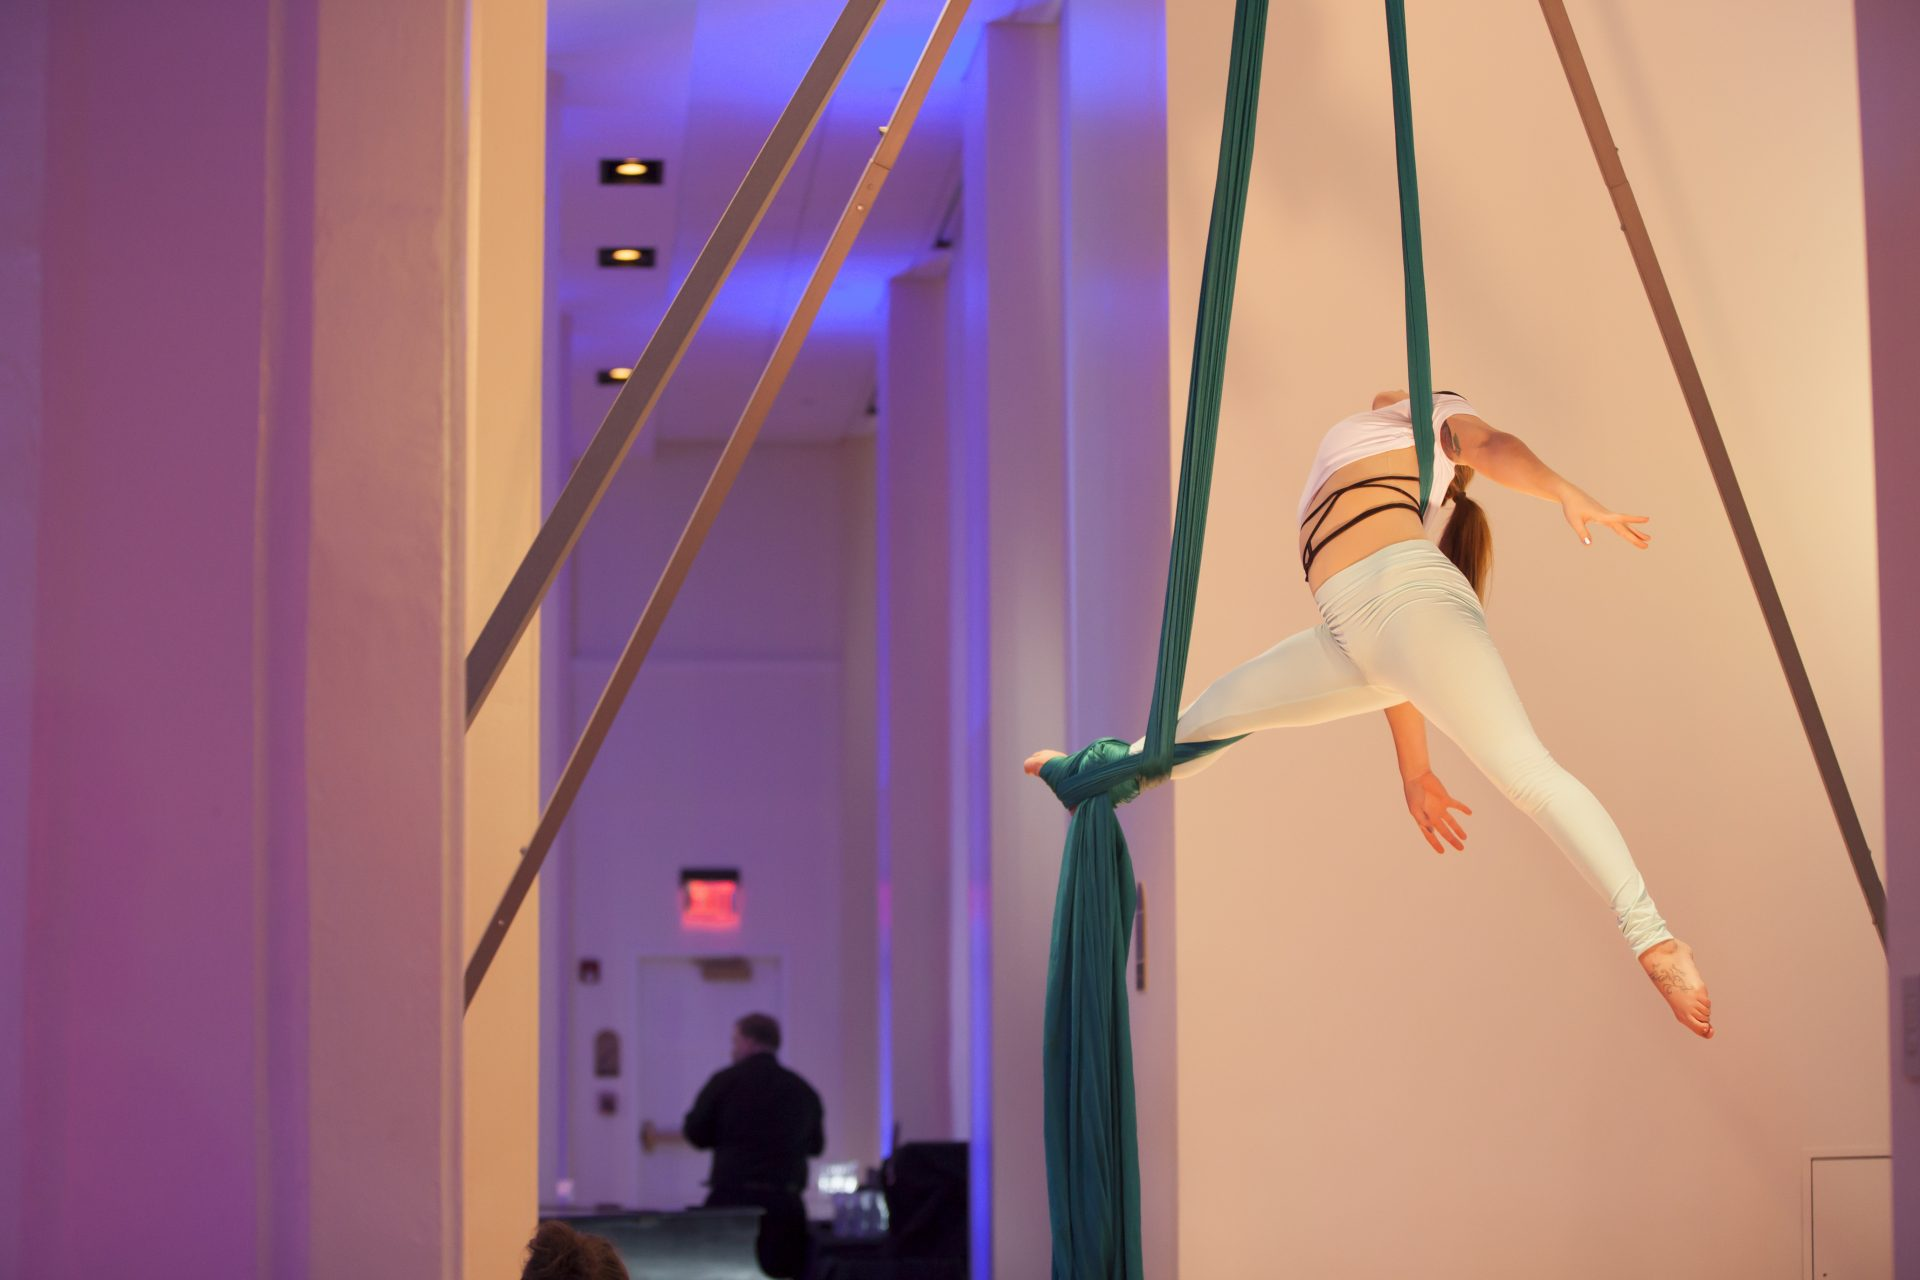 An aerial acrobat performs at an event planned by Bleu Events